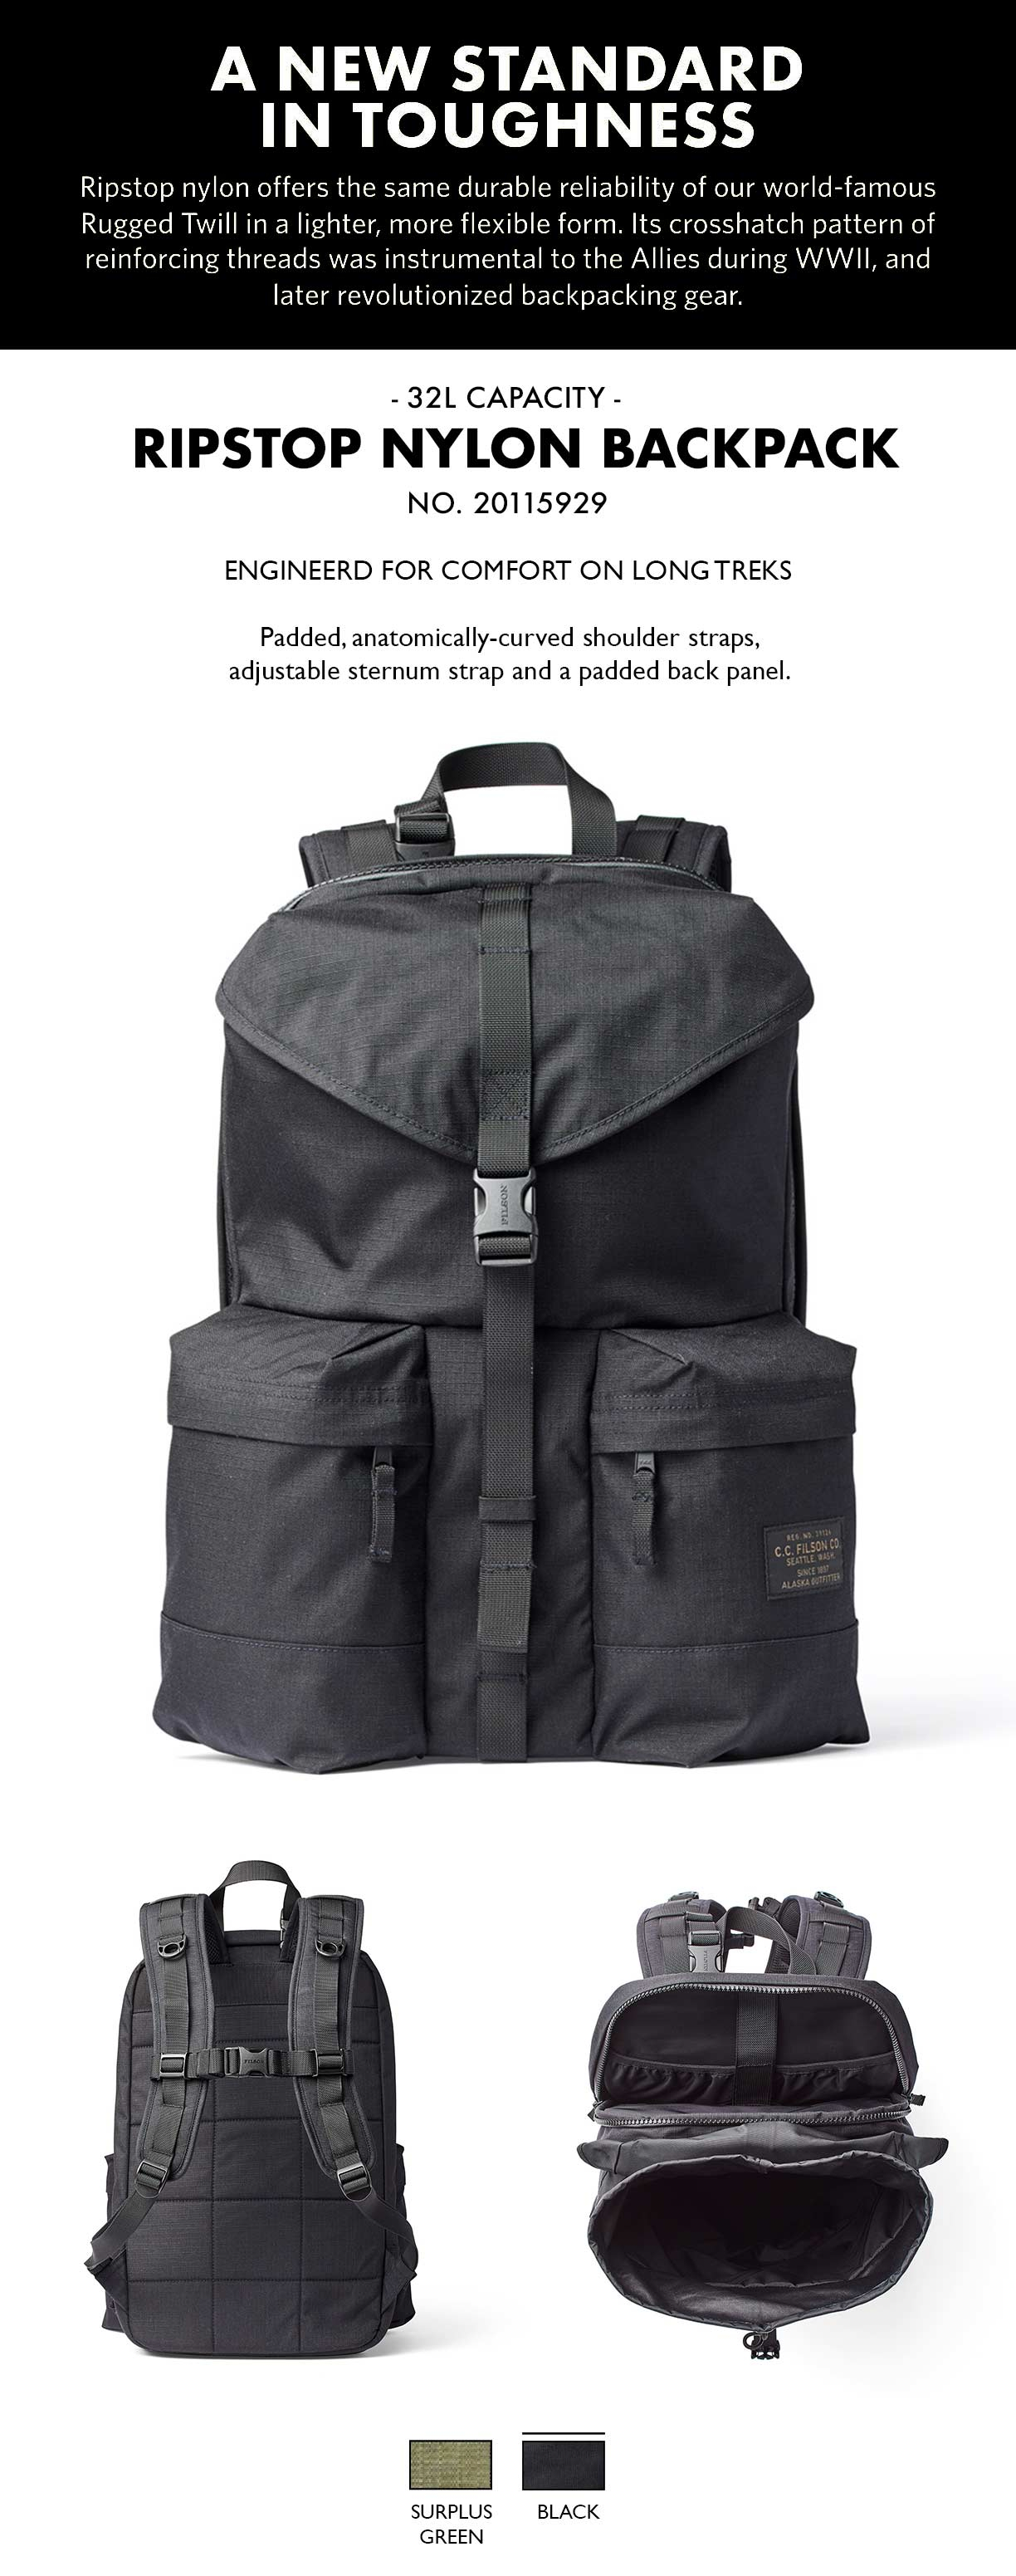 Filson Ripstop Backpack Surplus Green Product-information